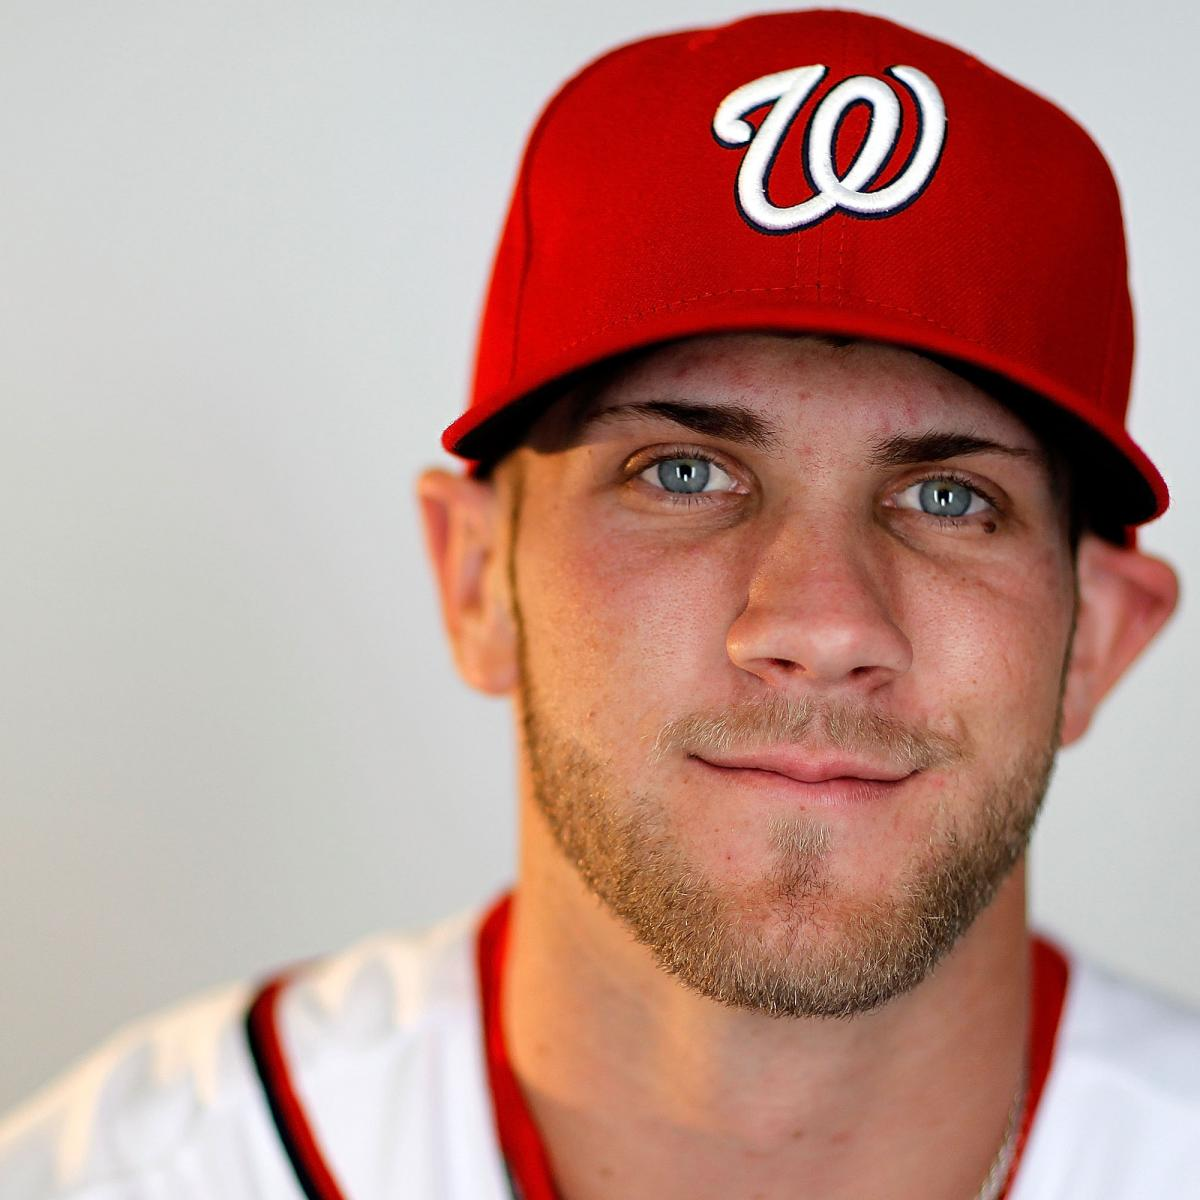 The latest Tweets from Bryce Harper Bharper3407 Let the canvas speak United States